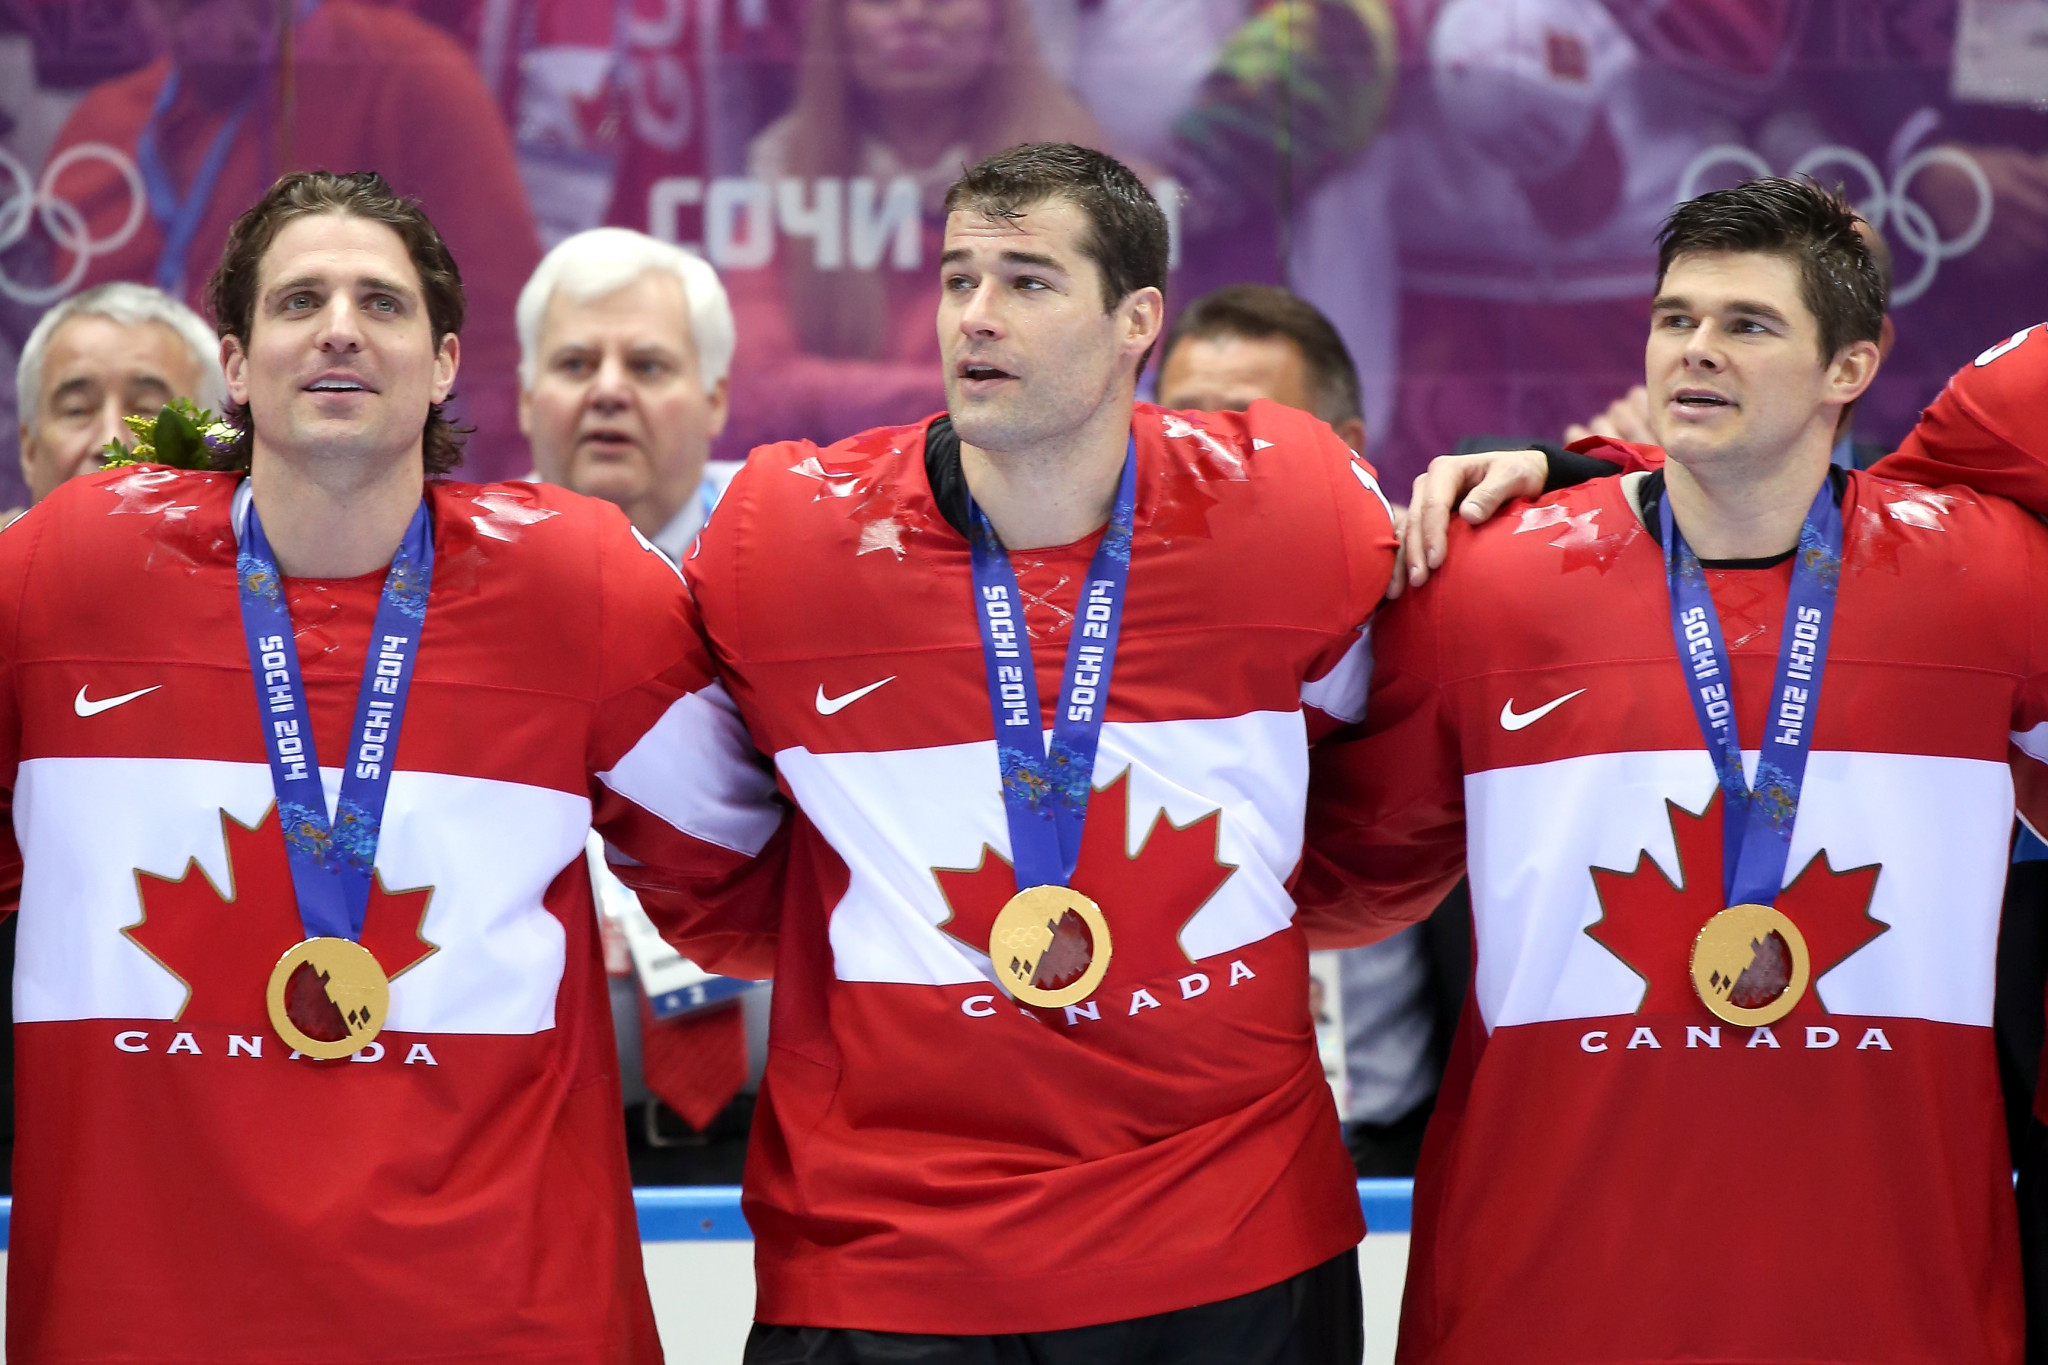 Chris Kunitz was part of the Canada team which won the Olympic gold medal at Sochi 2014 ©Getty Images